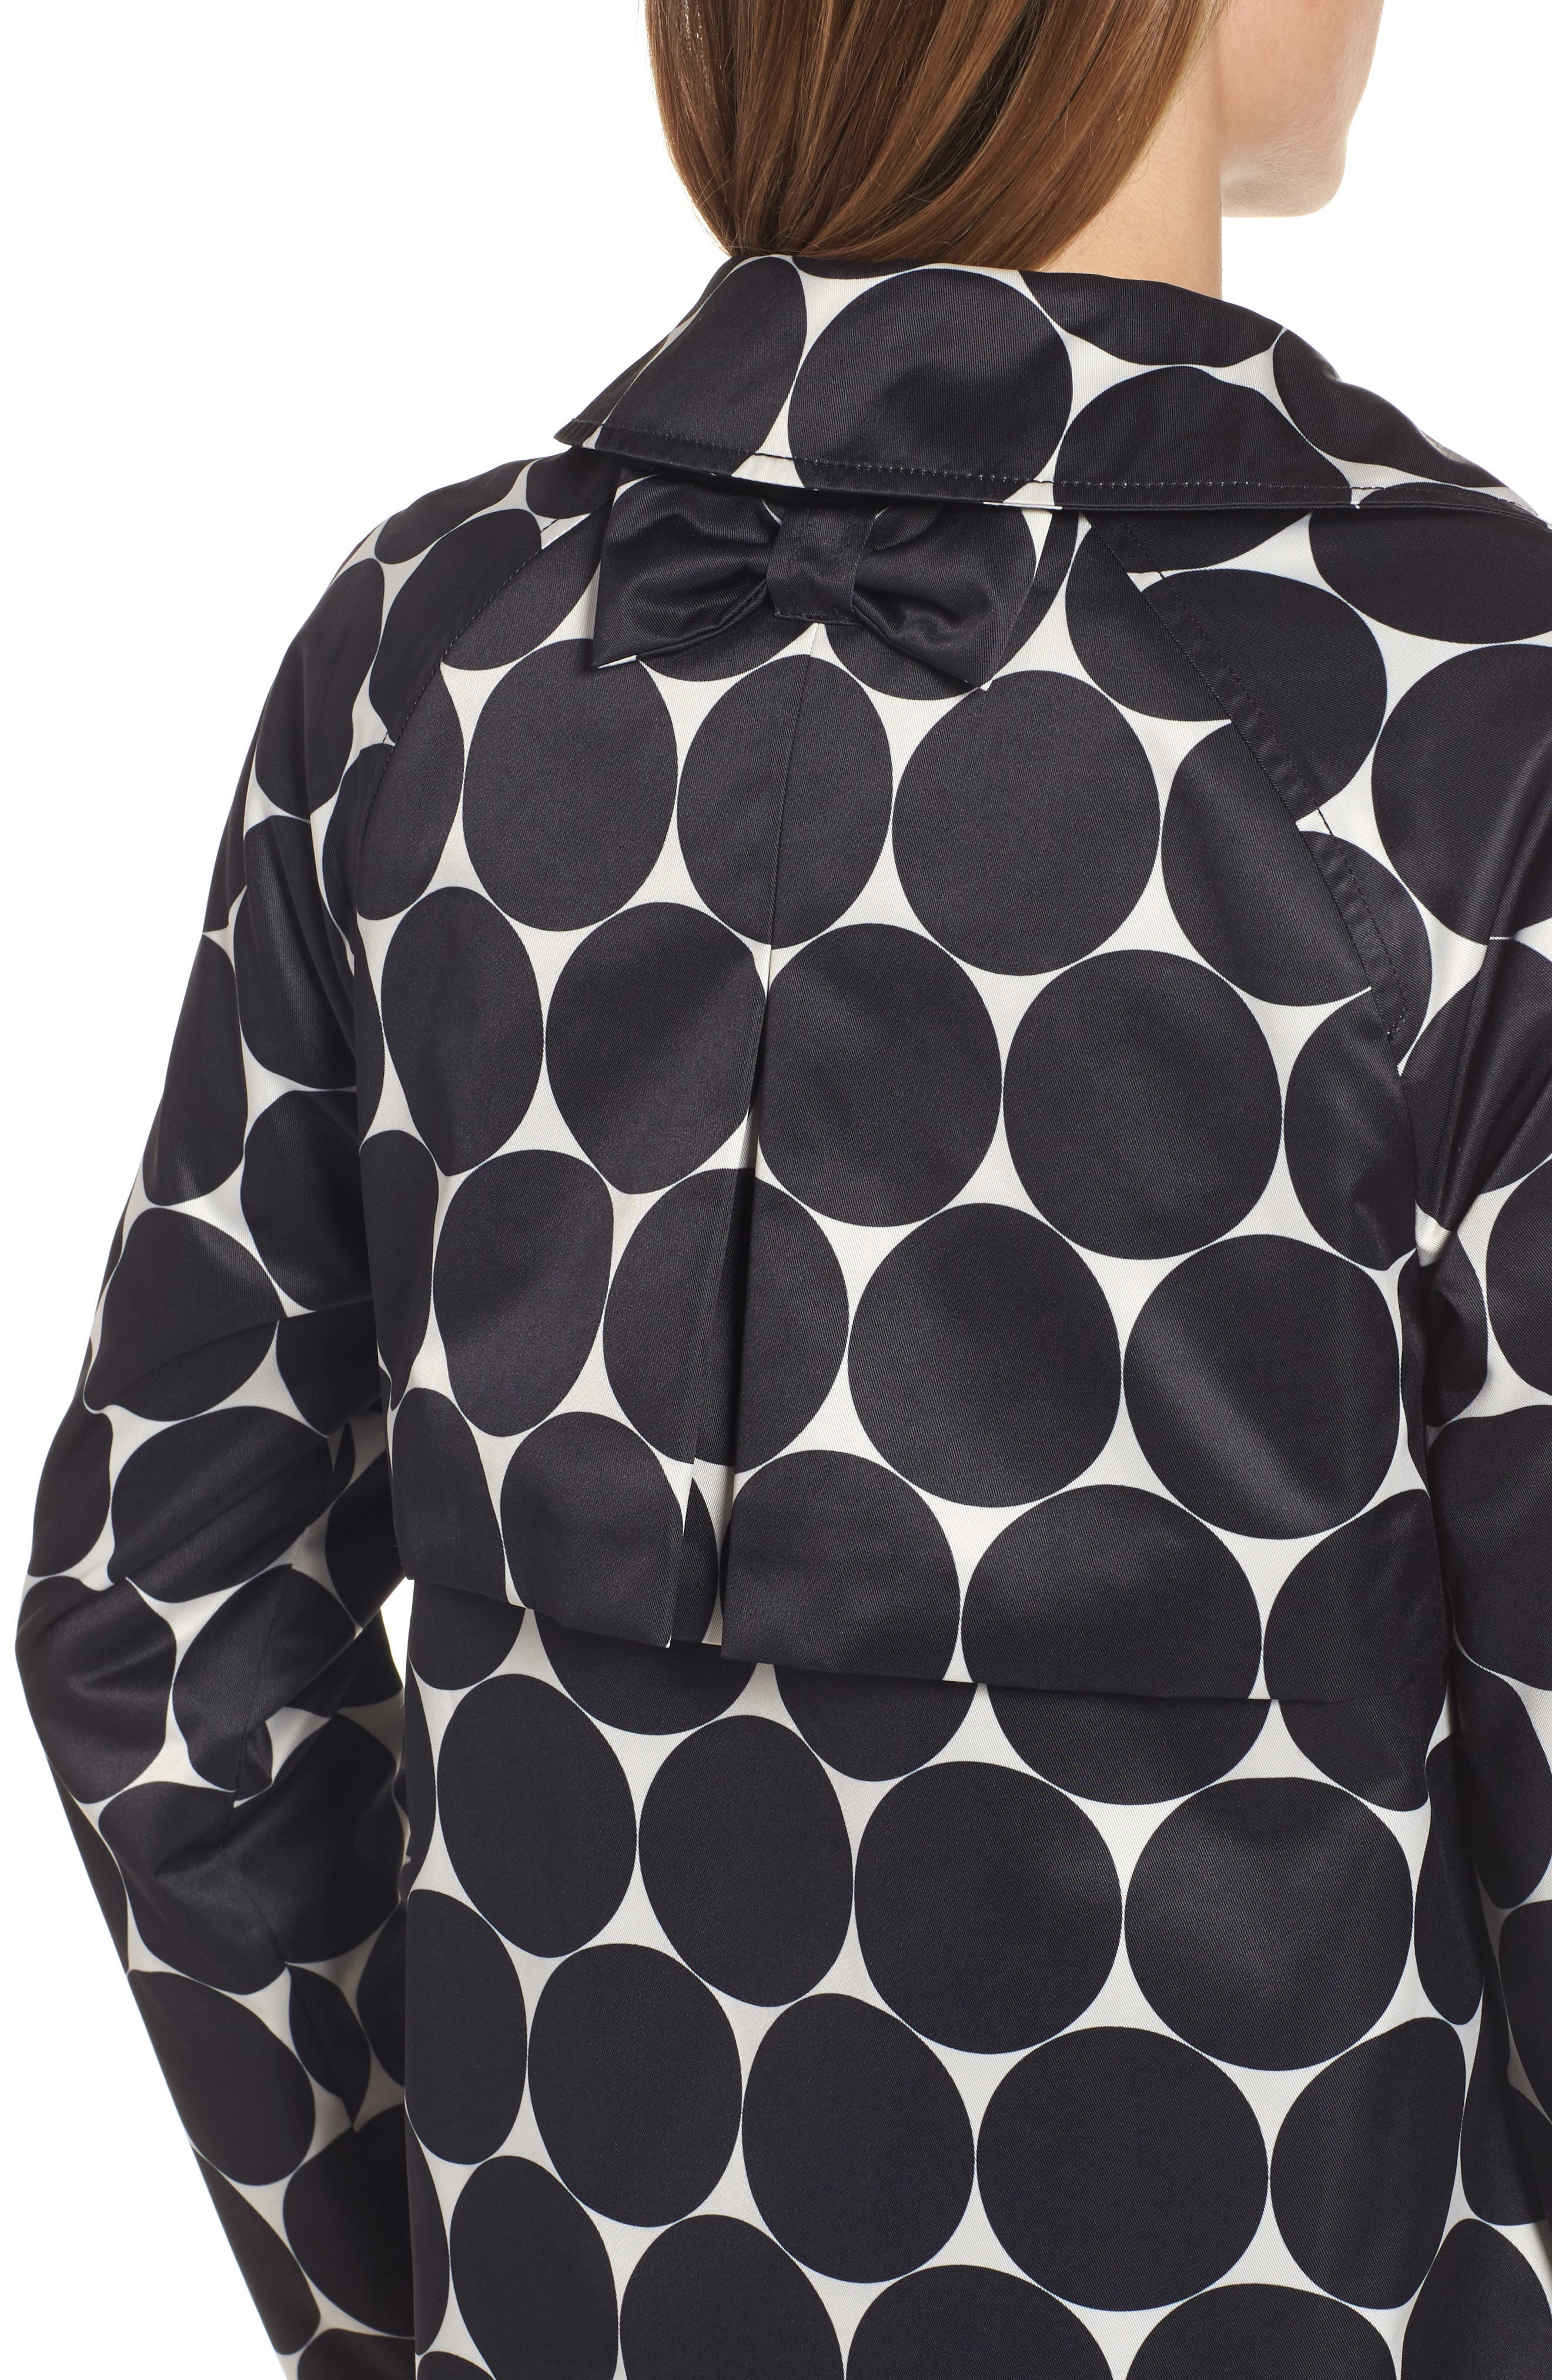 dot print raincoat,                             Alternate thumbnail 4, color,                             Dl Dot Cream/ Black